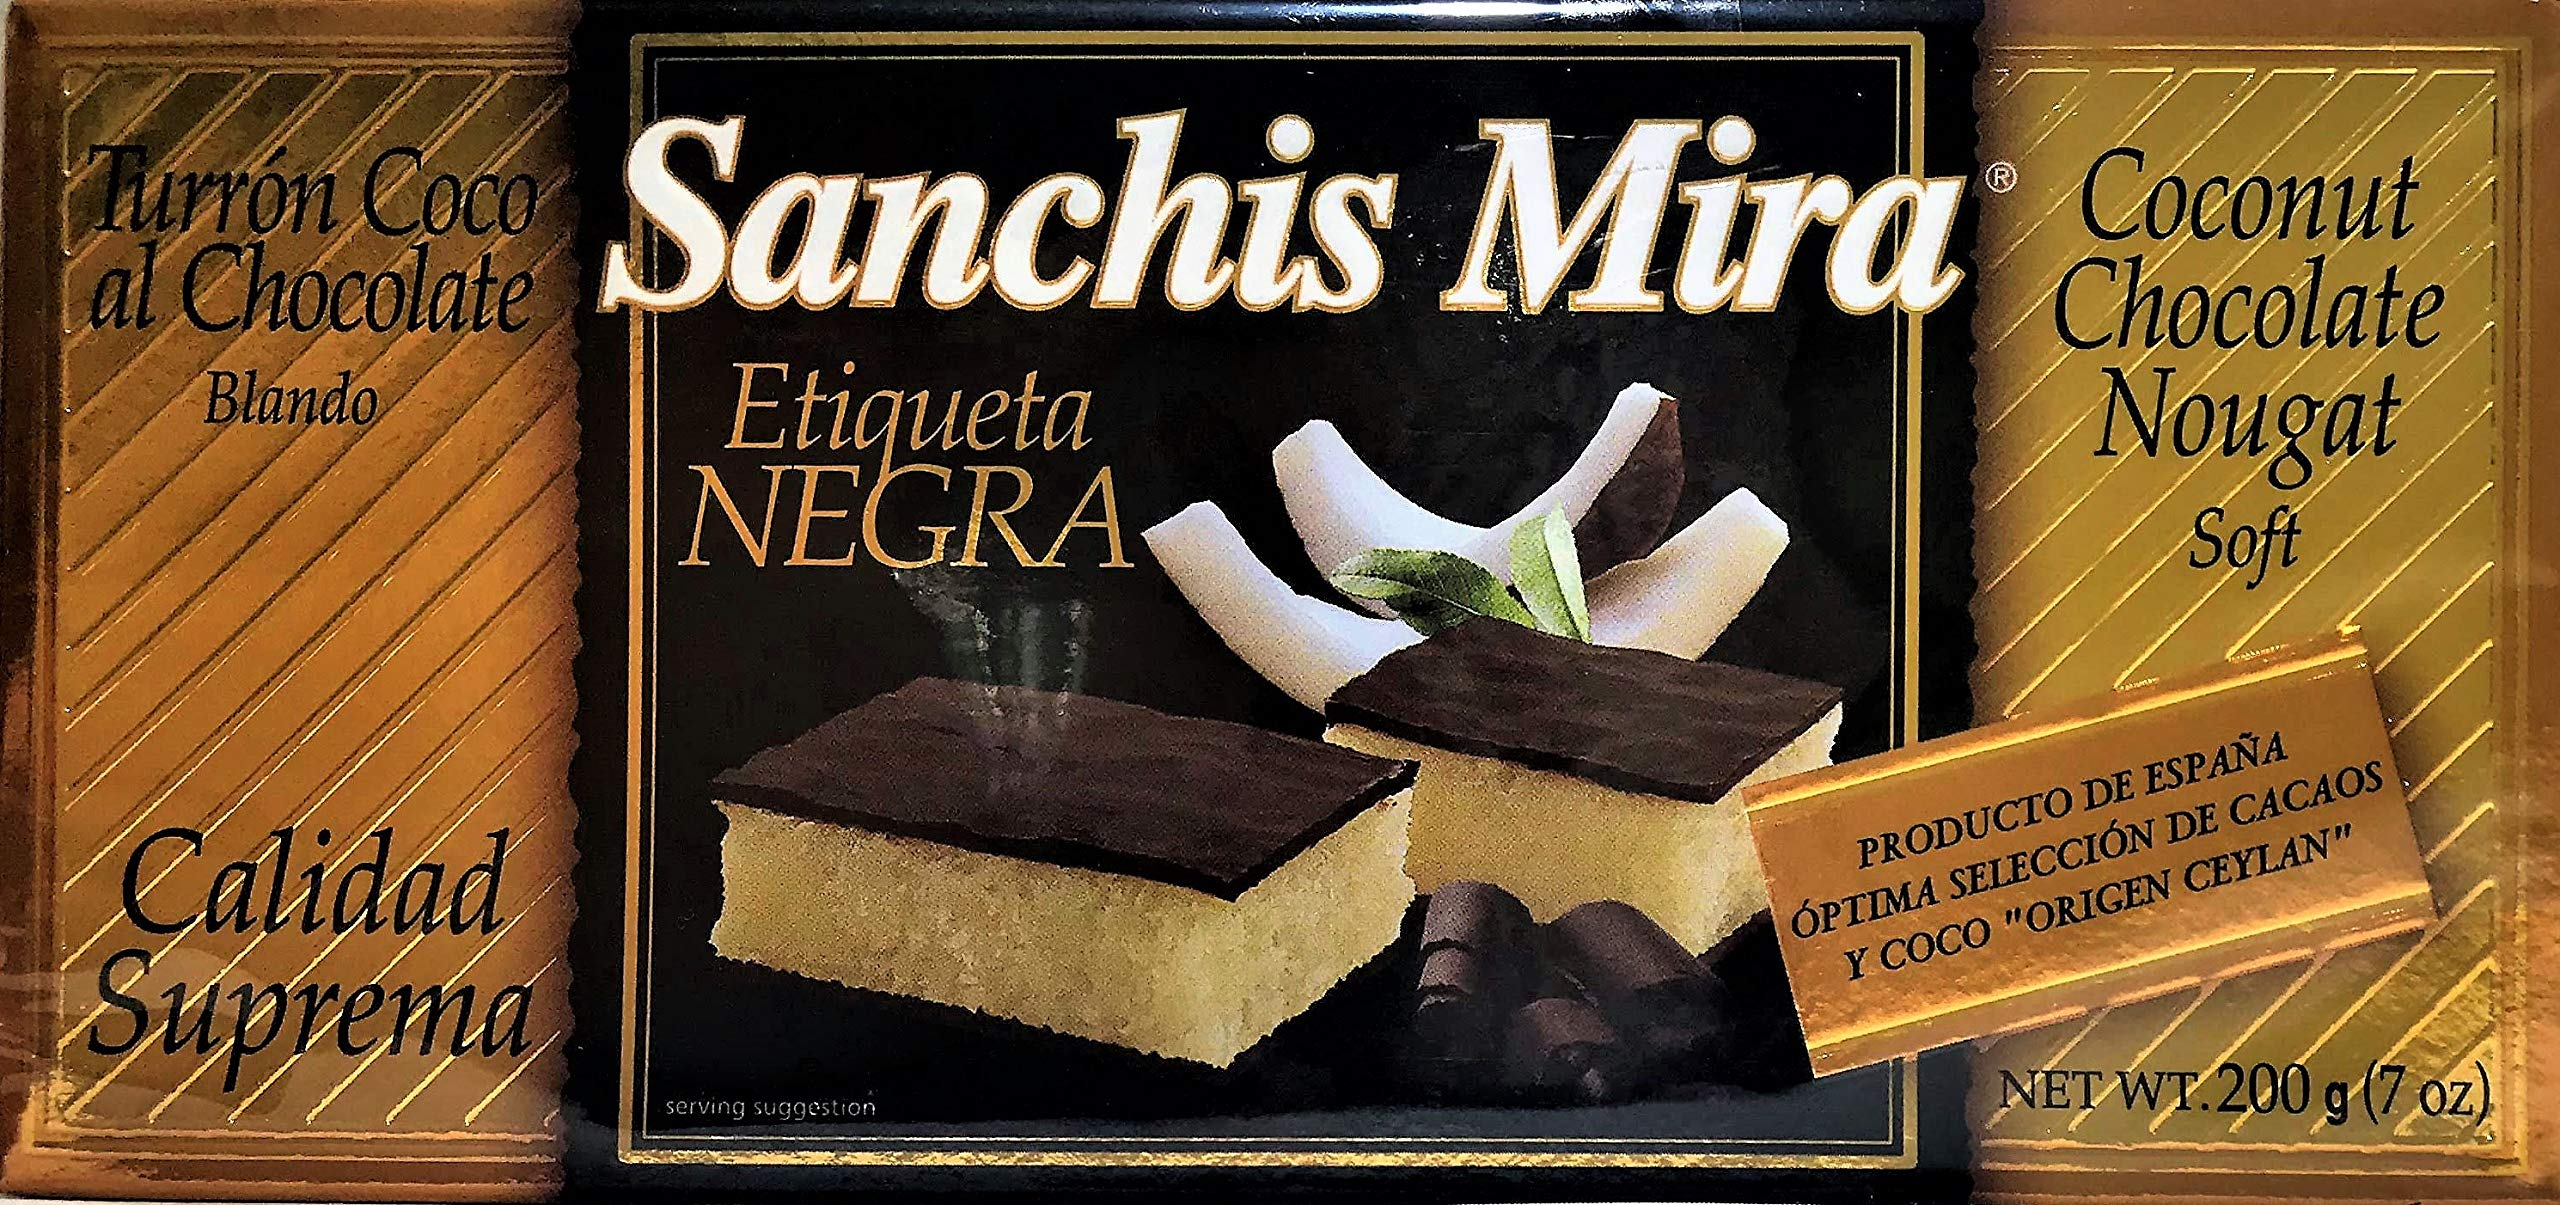 Sanchis Mira Turron de Coco con chocolate Just arrived from Spain. 7 oz.